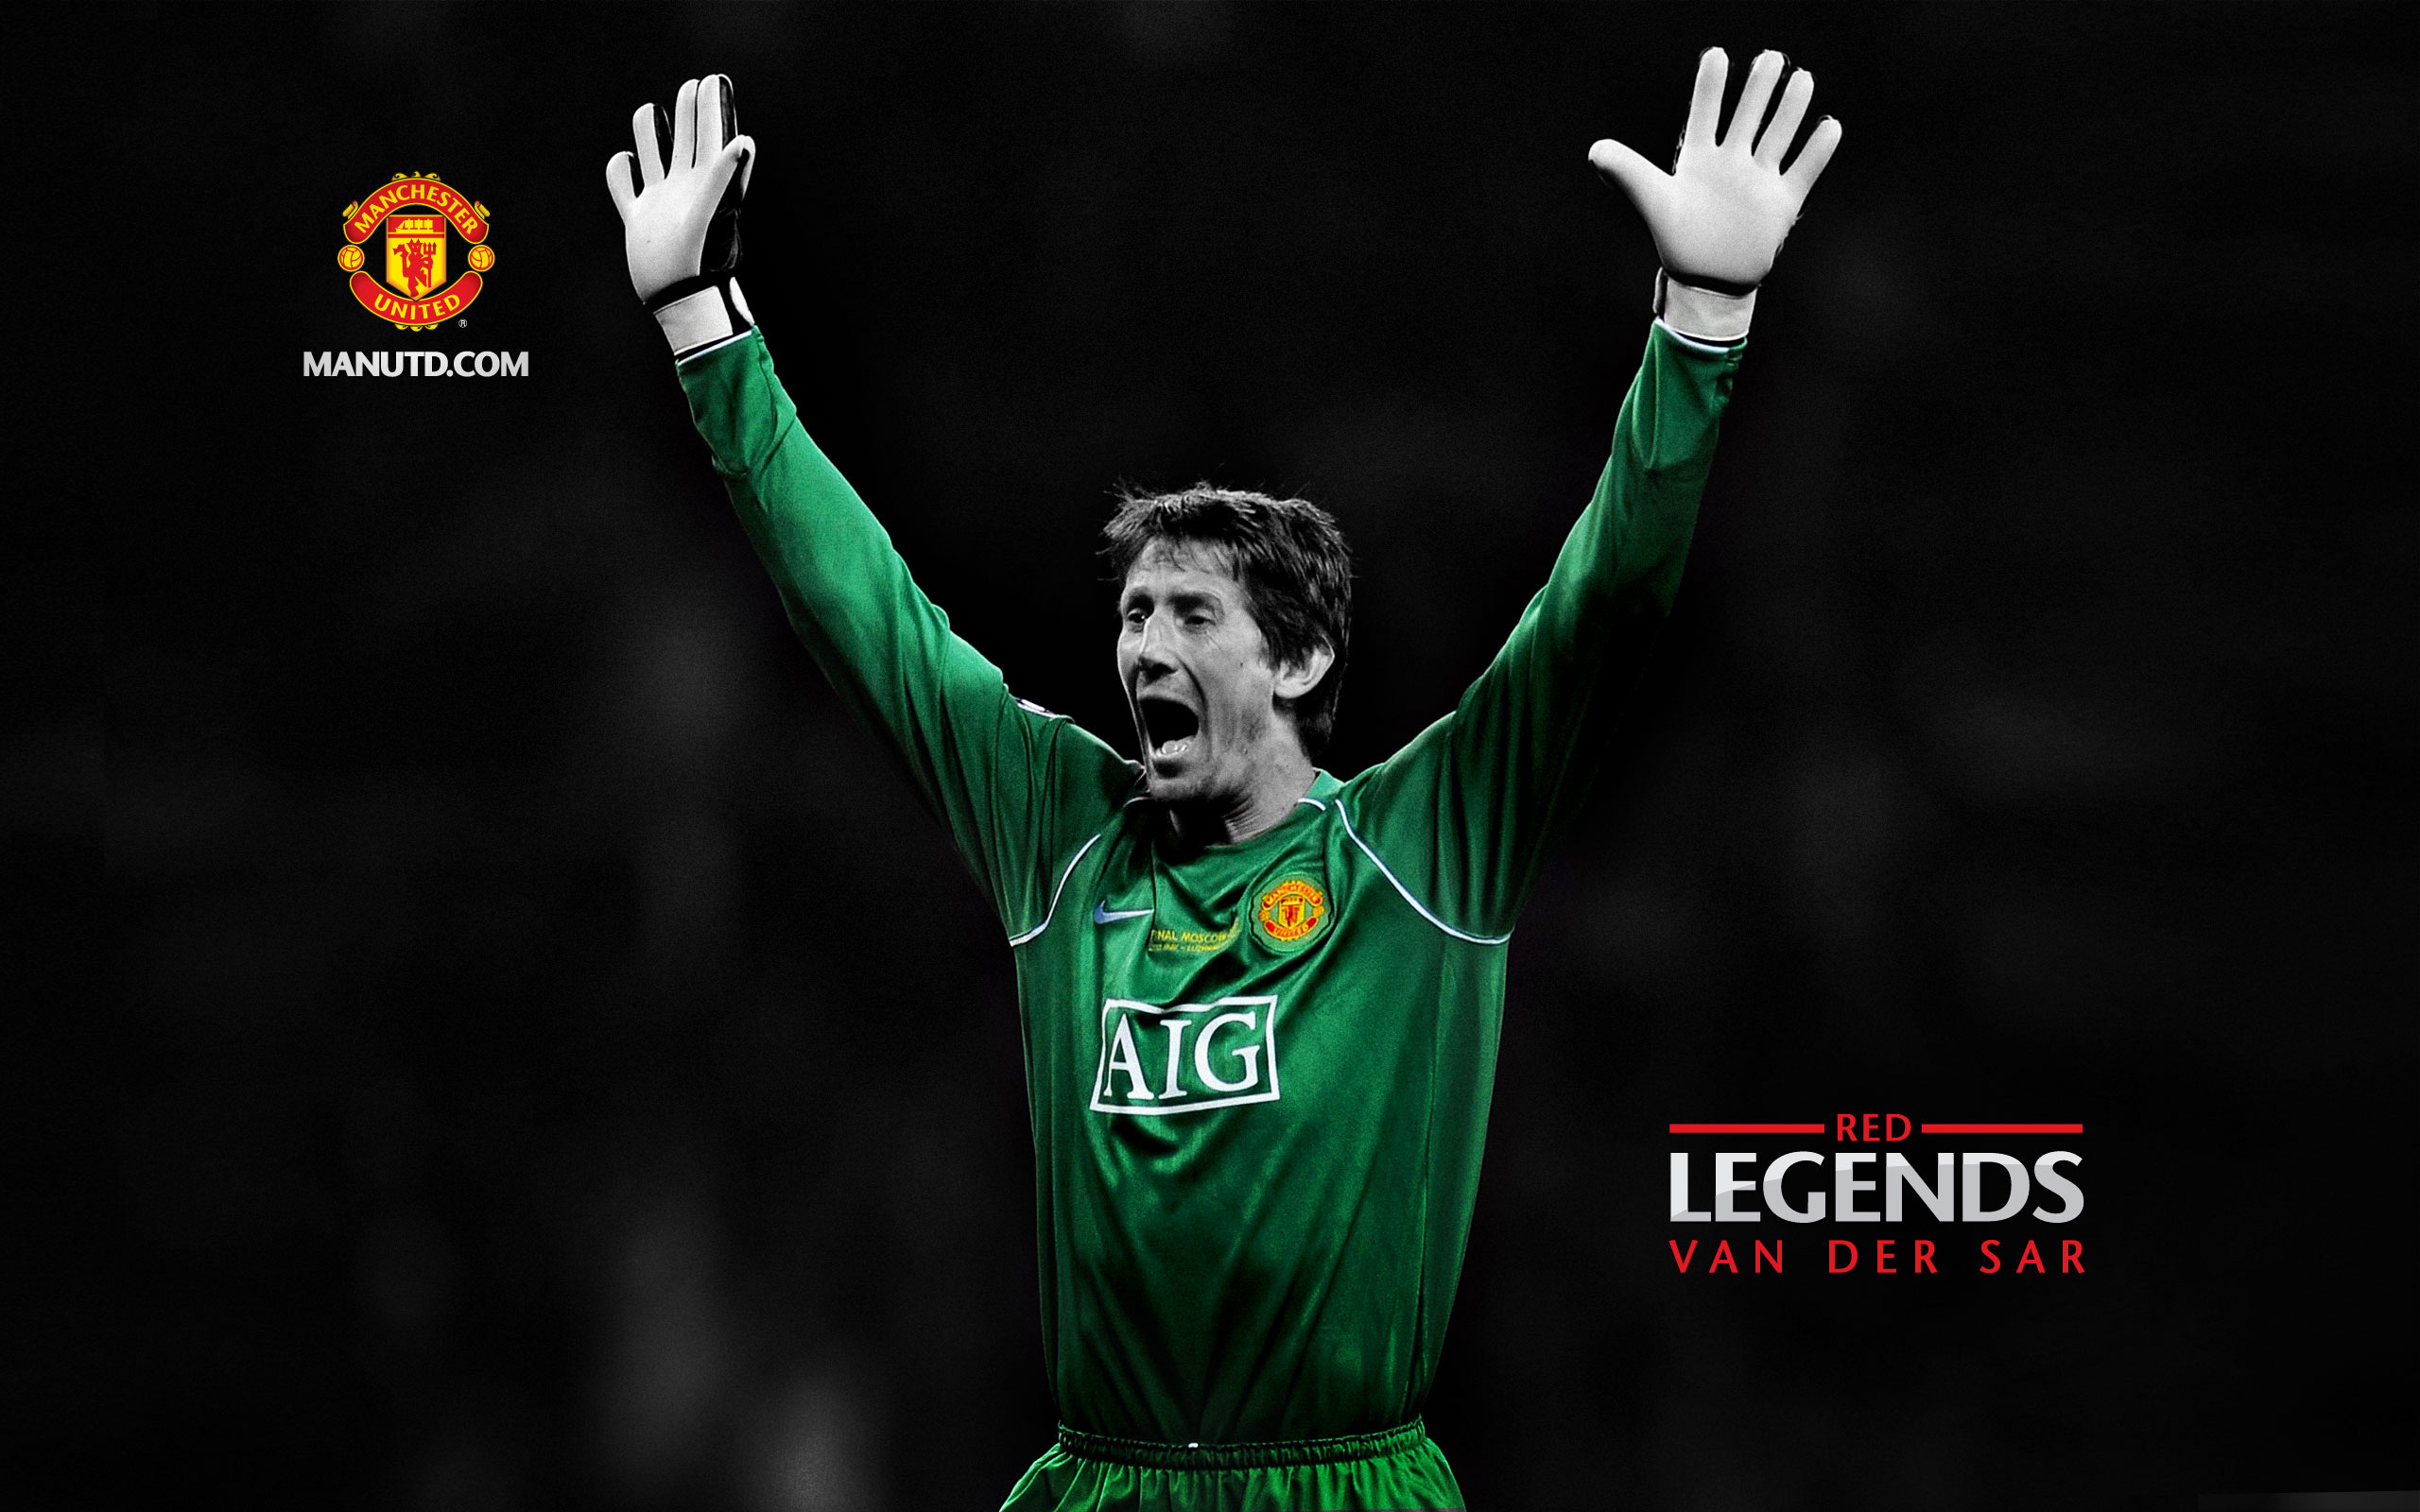 Legends - Edvin van der Sar